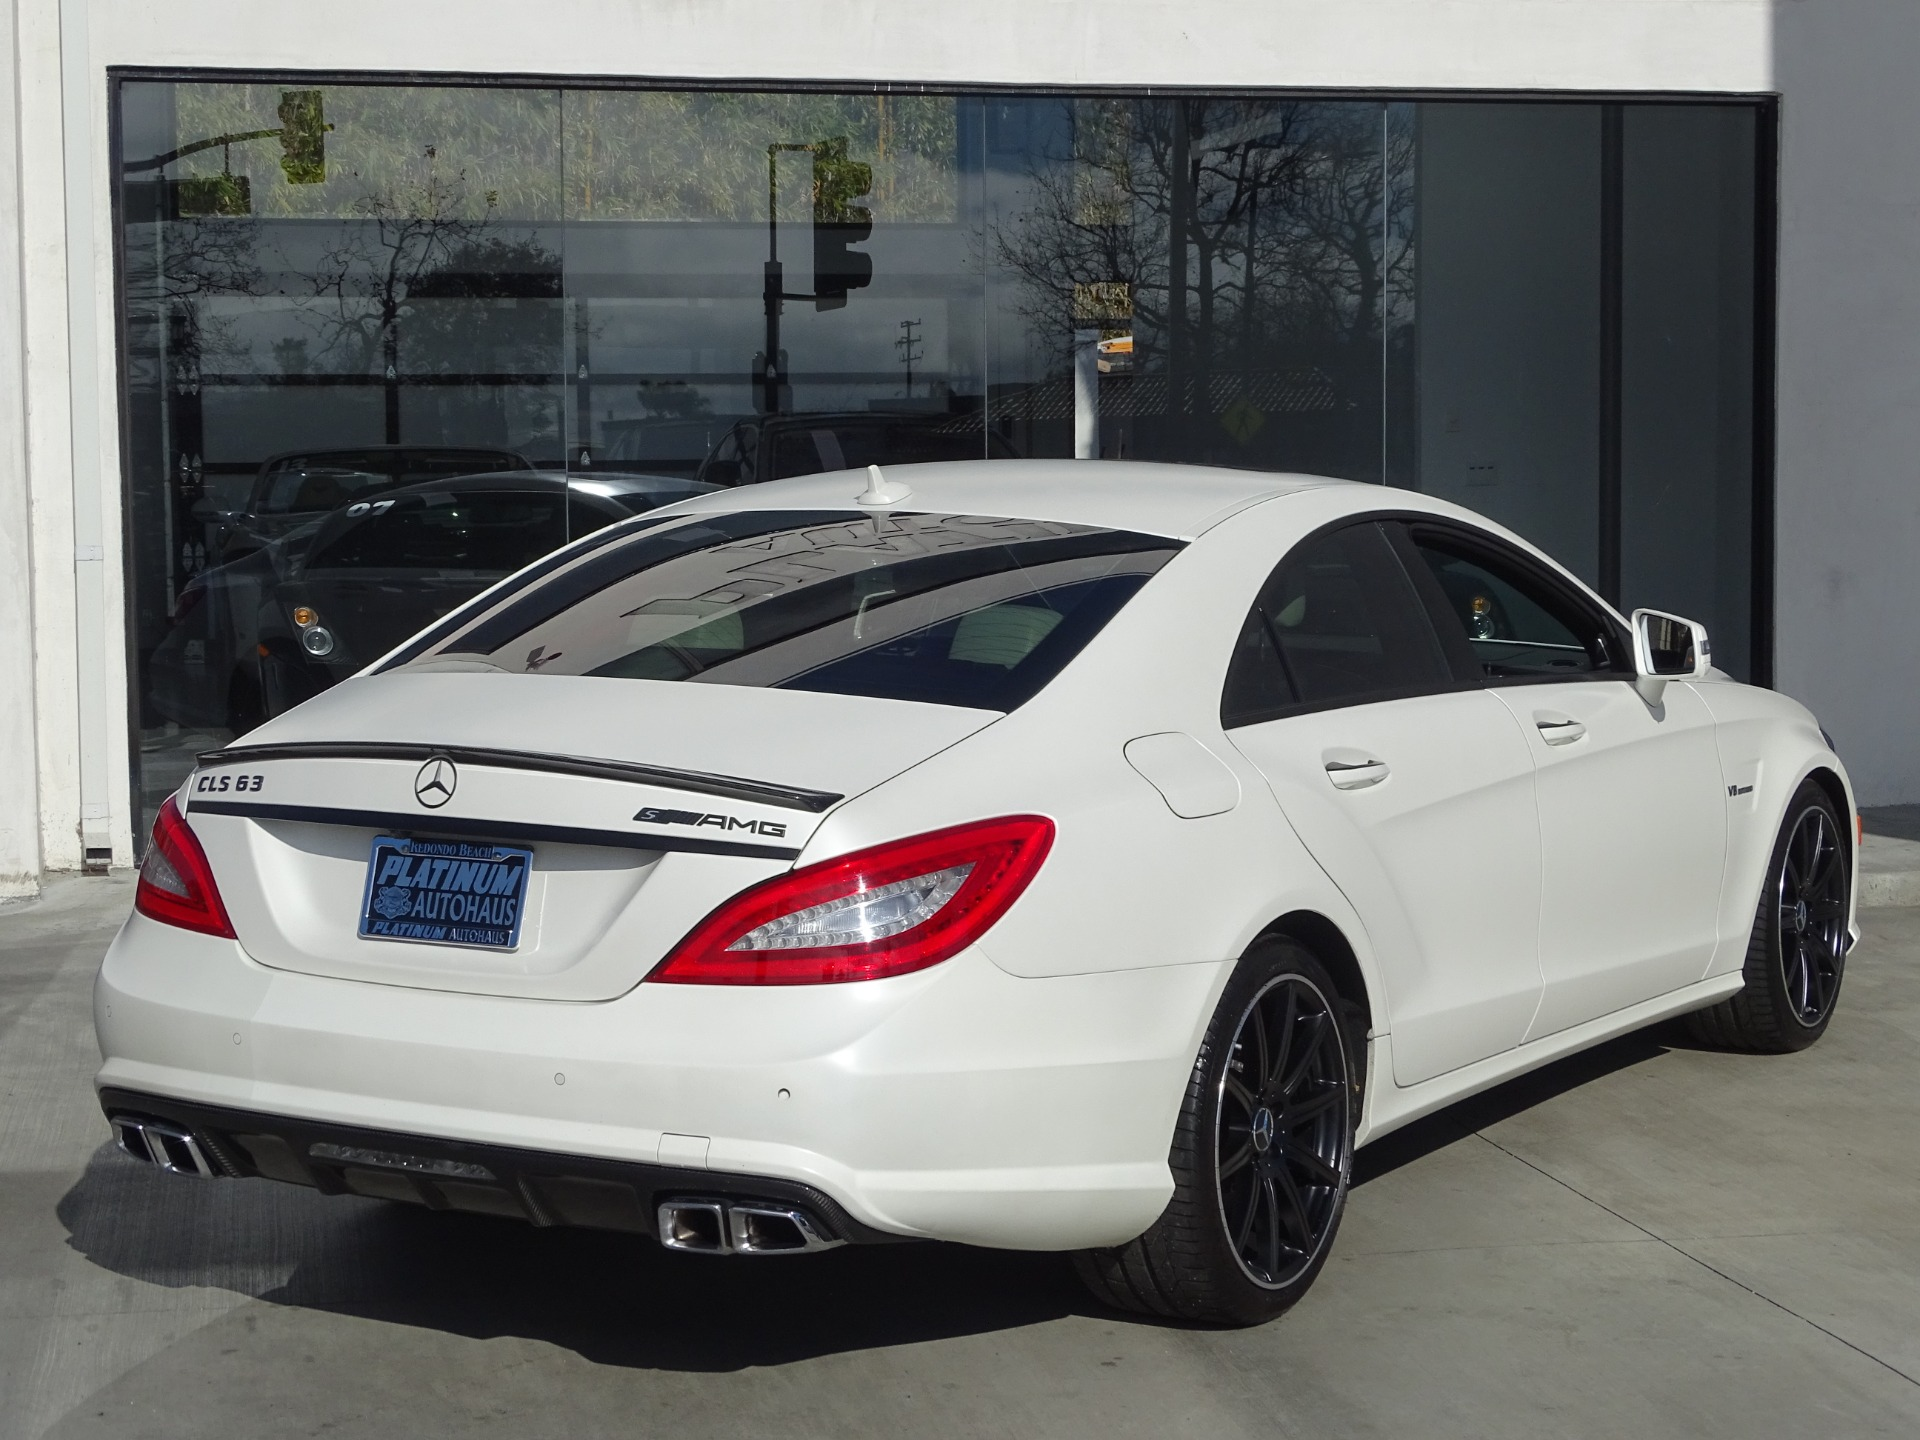 Used-2014-Mercedes-Benz-CLS63-AMG-S-Model---***-FACTORY-MATTE-PAINT-***